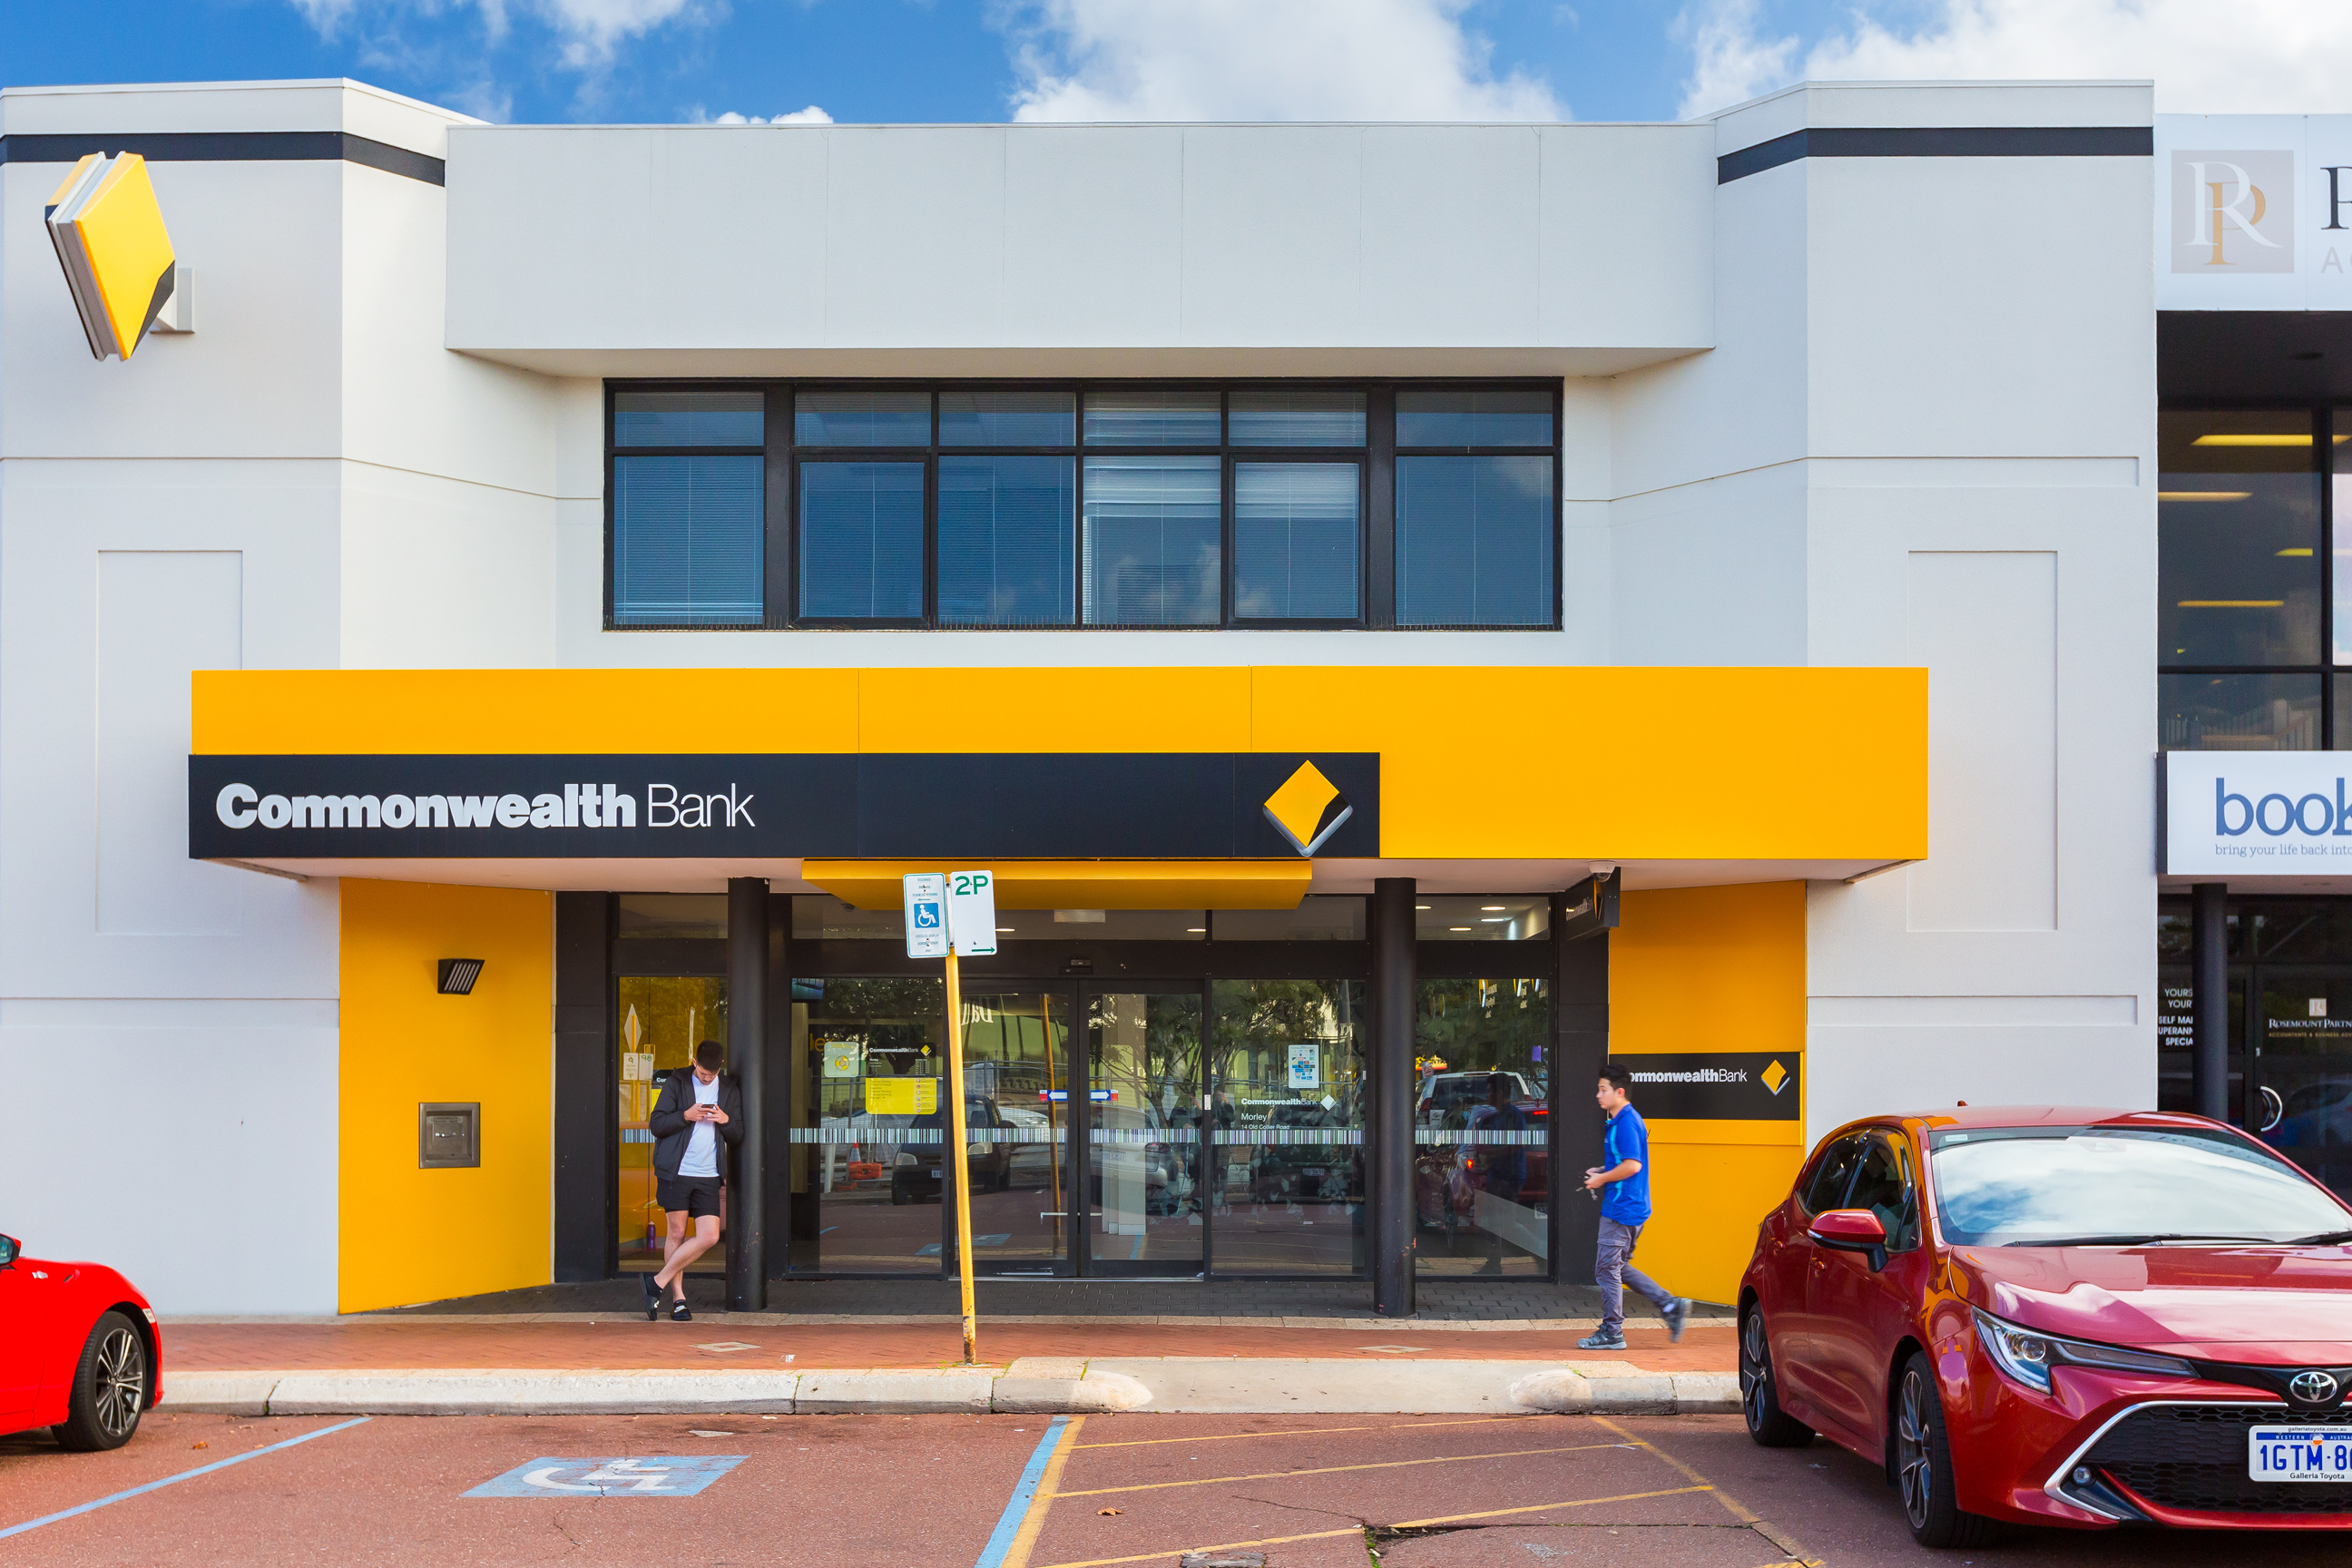 Flagship Commonwealth Bank Investment Gateway Entrance to Galleria Shopping Centre